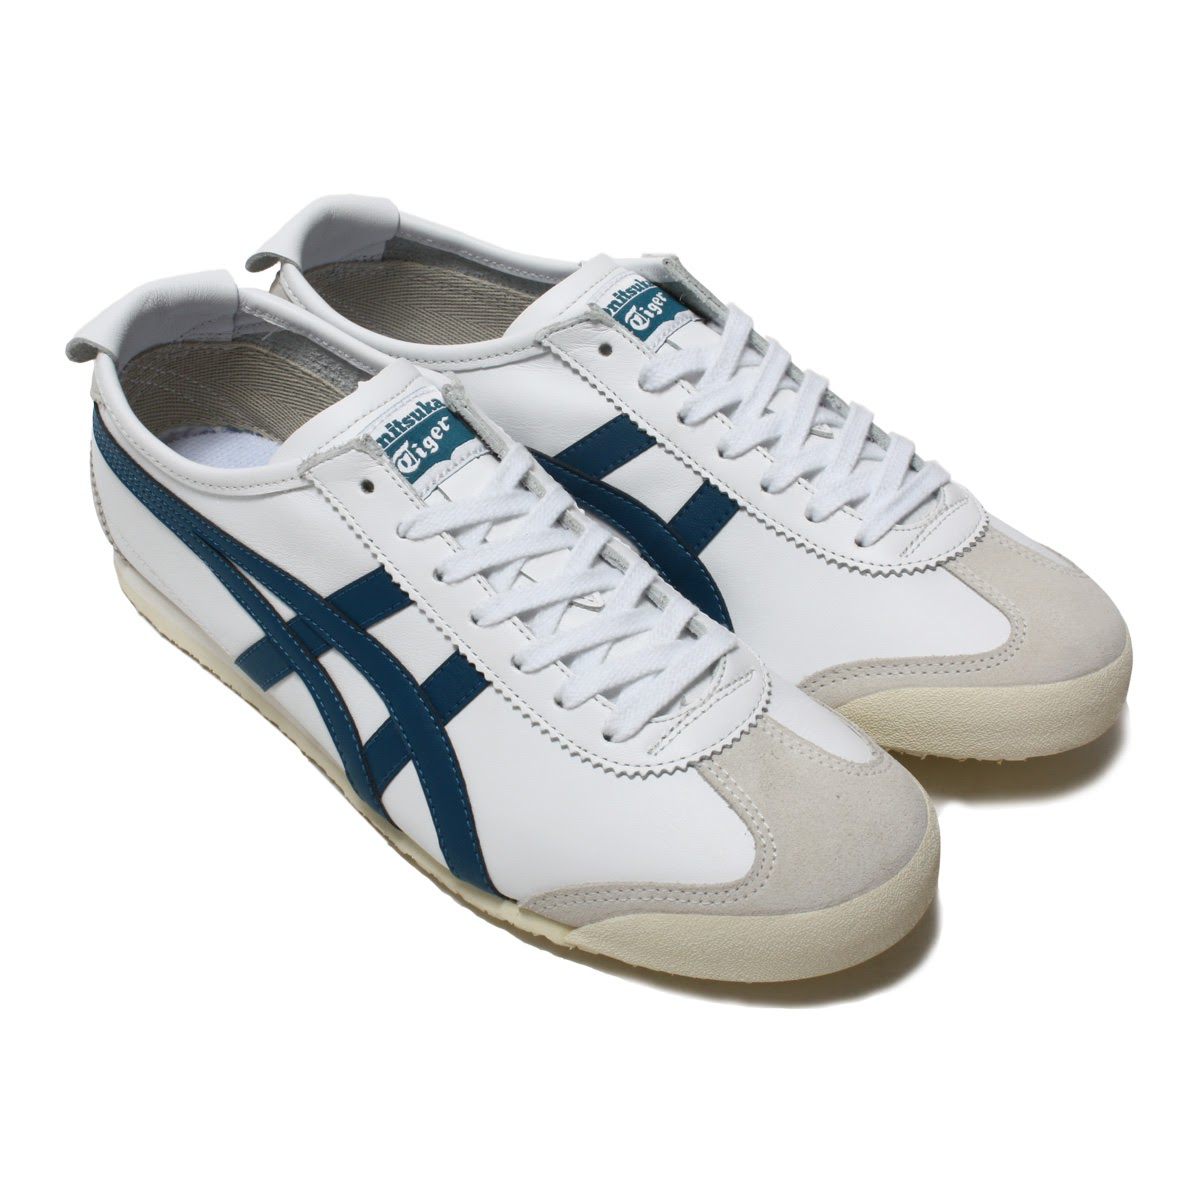 on sale 13e3b d6f16 Onitsuka Tiger MEXICO 66(オニツカ タイガー メキシコ 66)WHITE/INK BLUE【メンズ レディース  スニーカー】17AW-I|atmos-tokyo